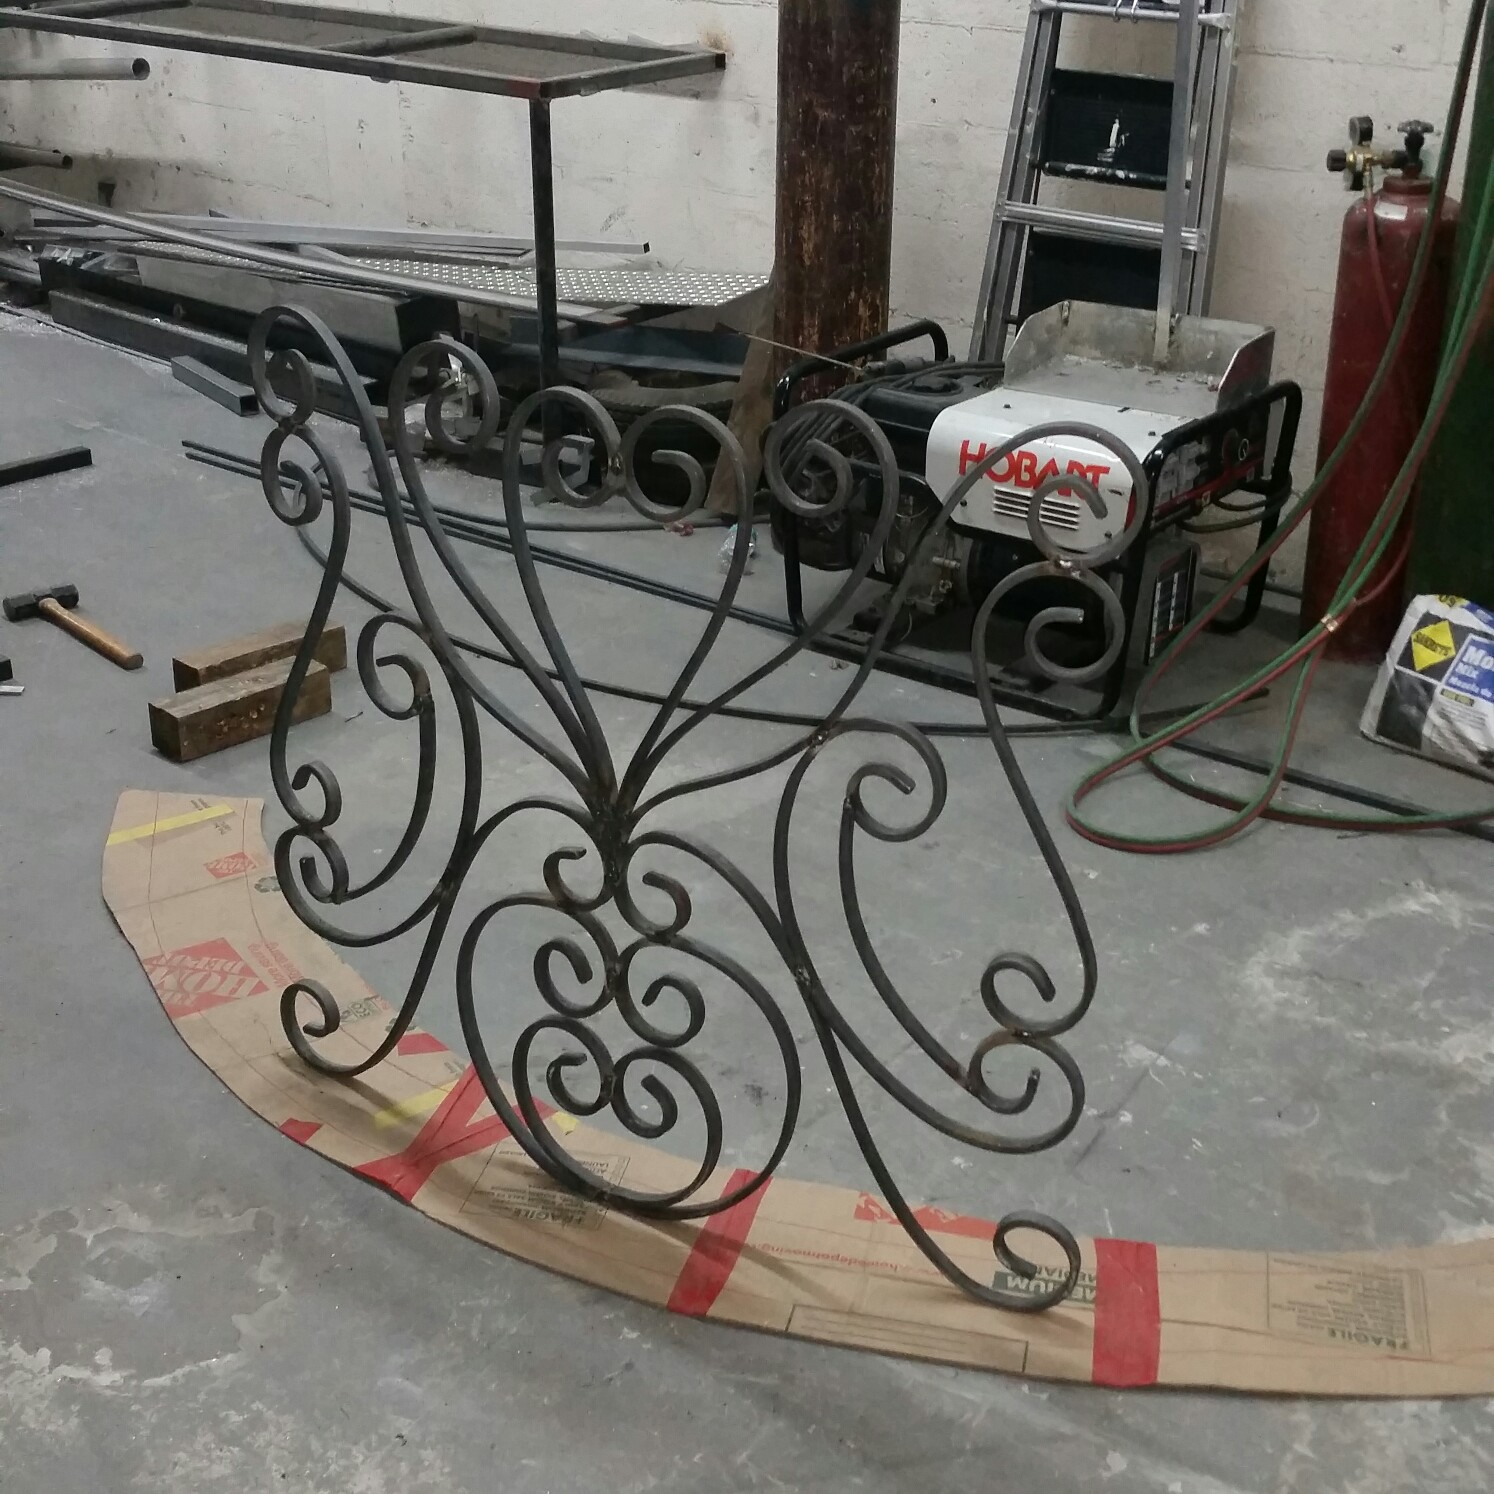 1 QUICK ALUMINUM & IRON WORK image 69